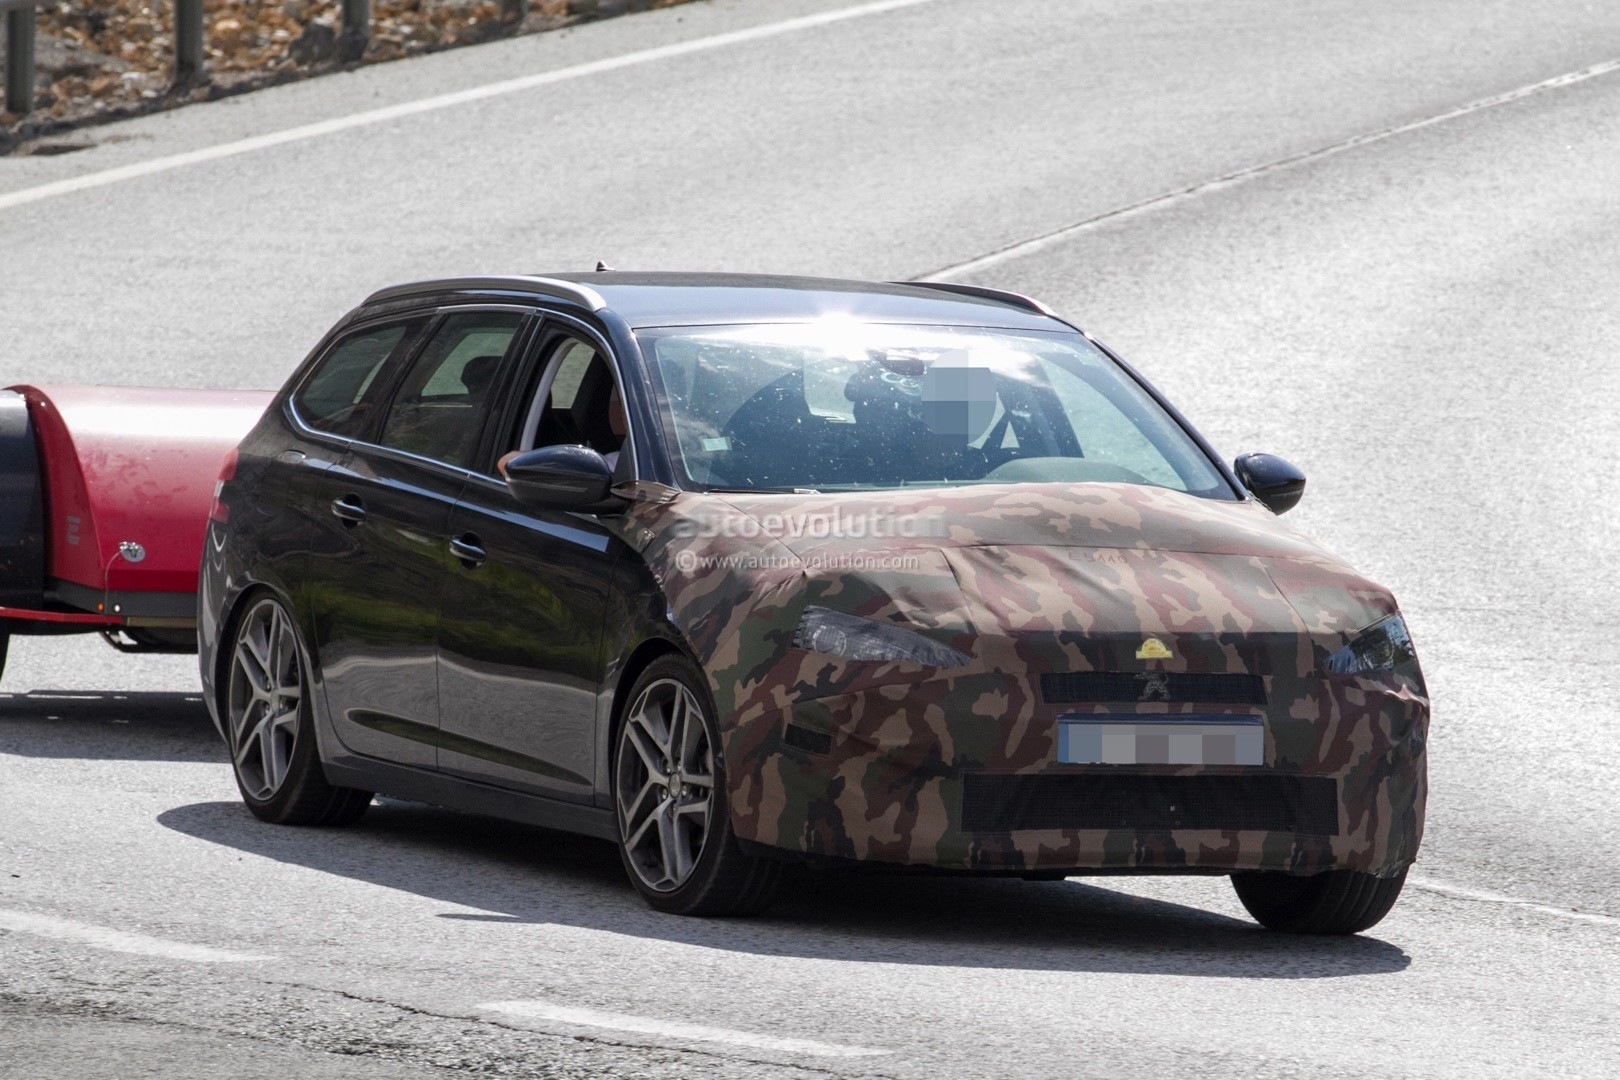 2017 - [Peugeot] 308 II Restylée - Page 11 Peugeot-prepares-to-facelift-308-model-lineup-for-2017_14